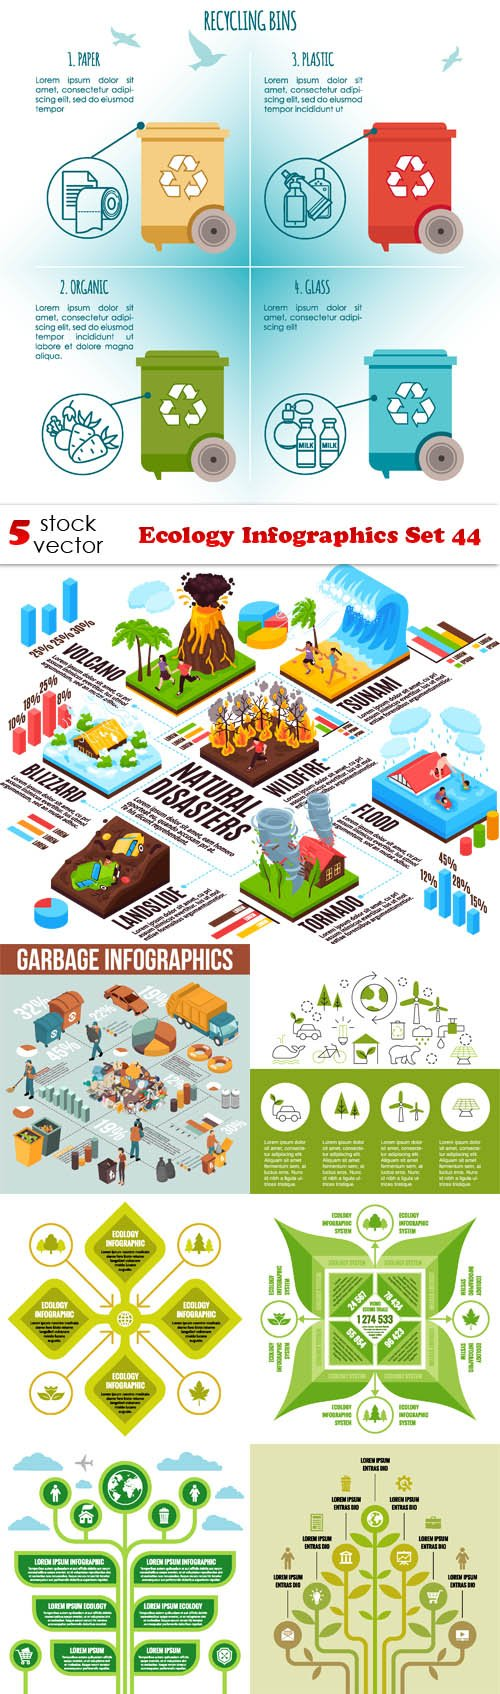 Vectors - Ecology Infographics Set 44